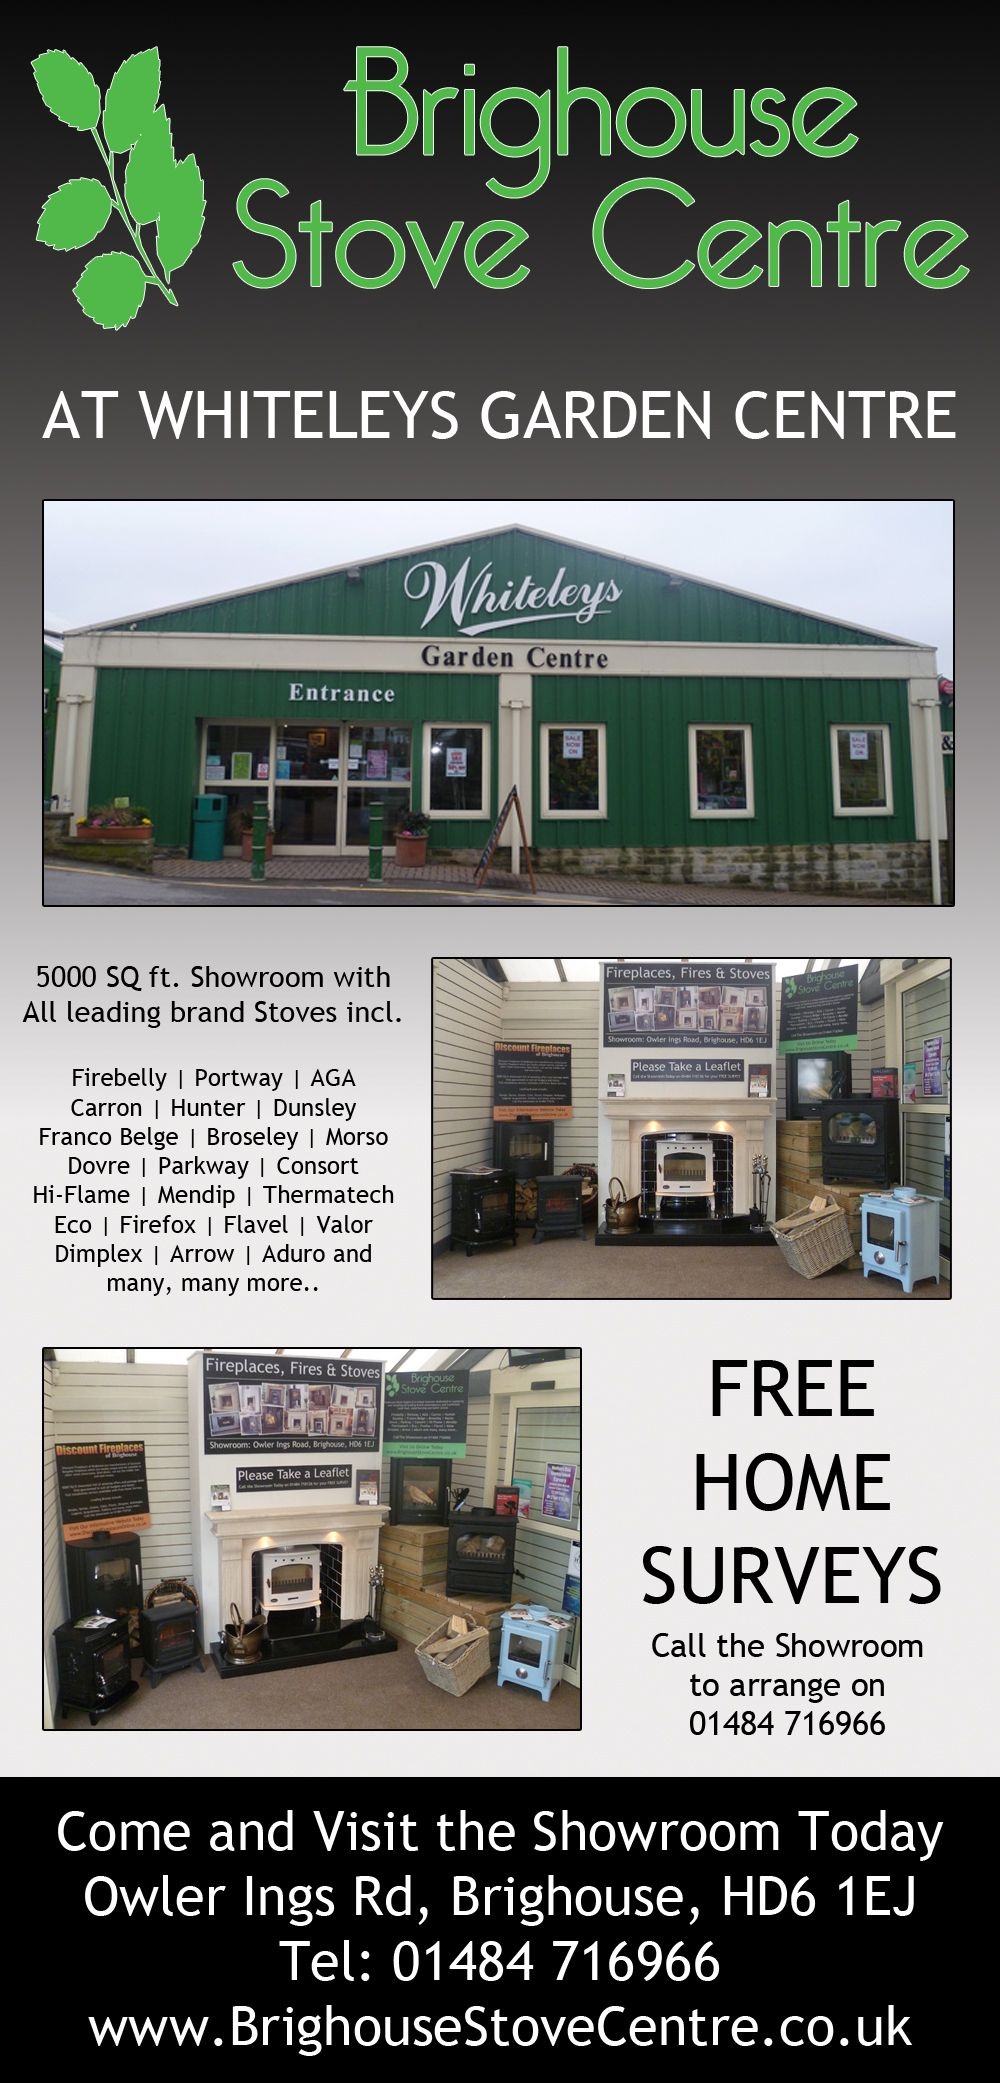 discount fireplaces now in partnership with whiteleys garden